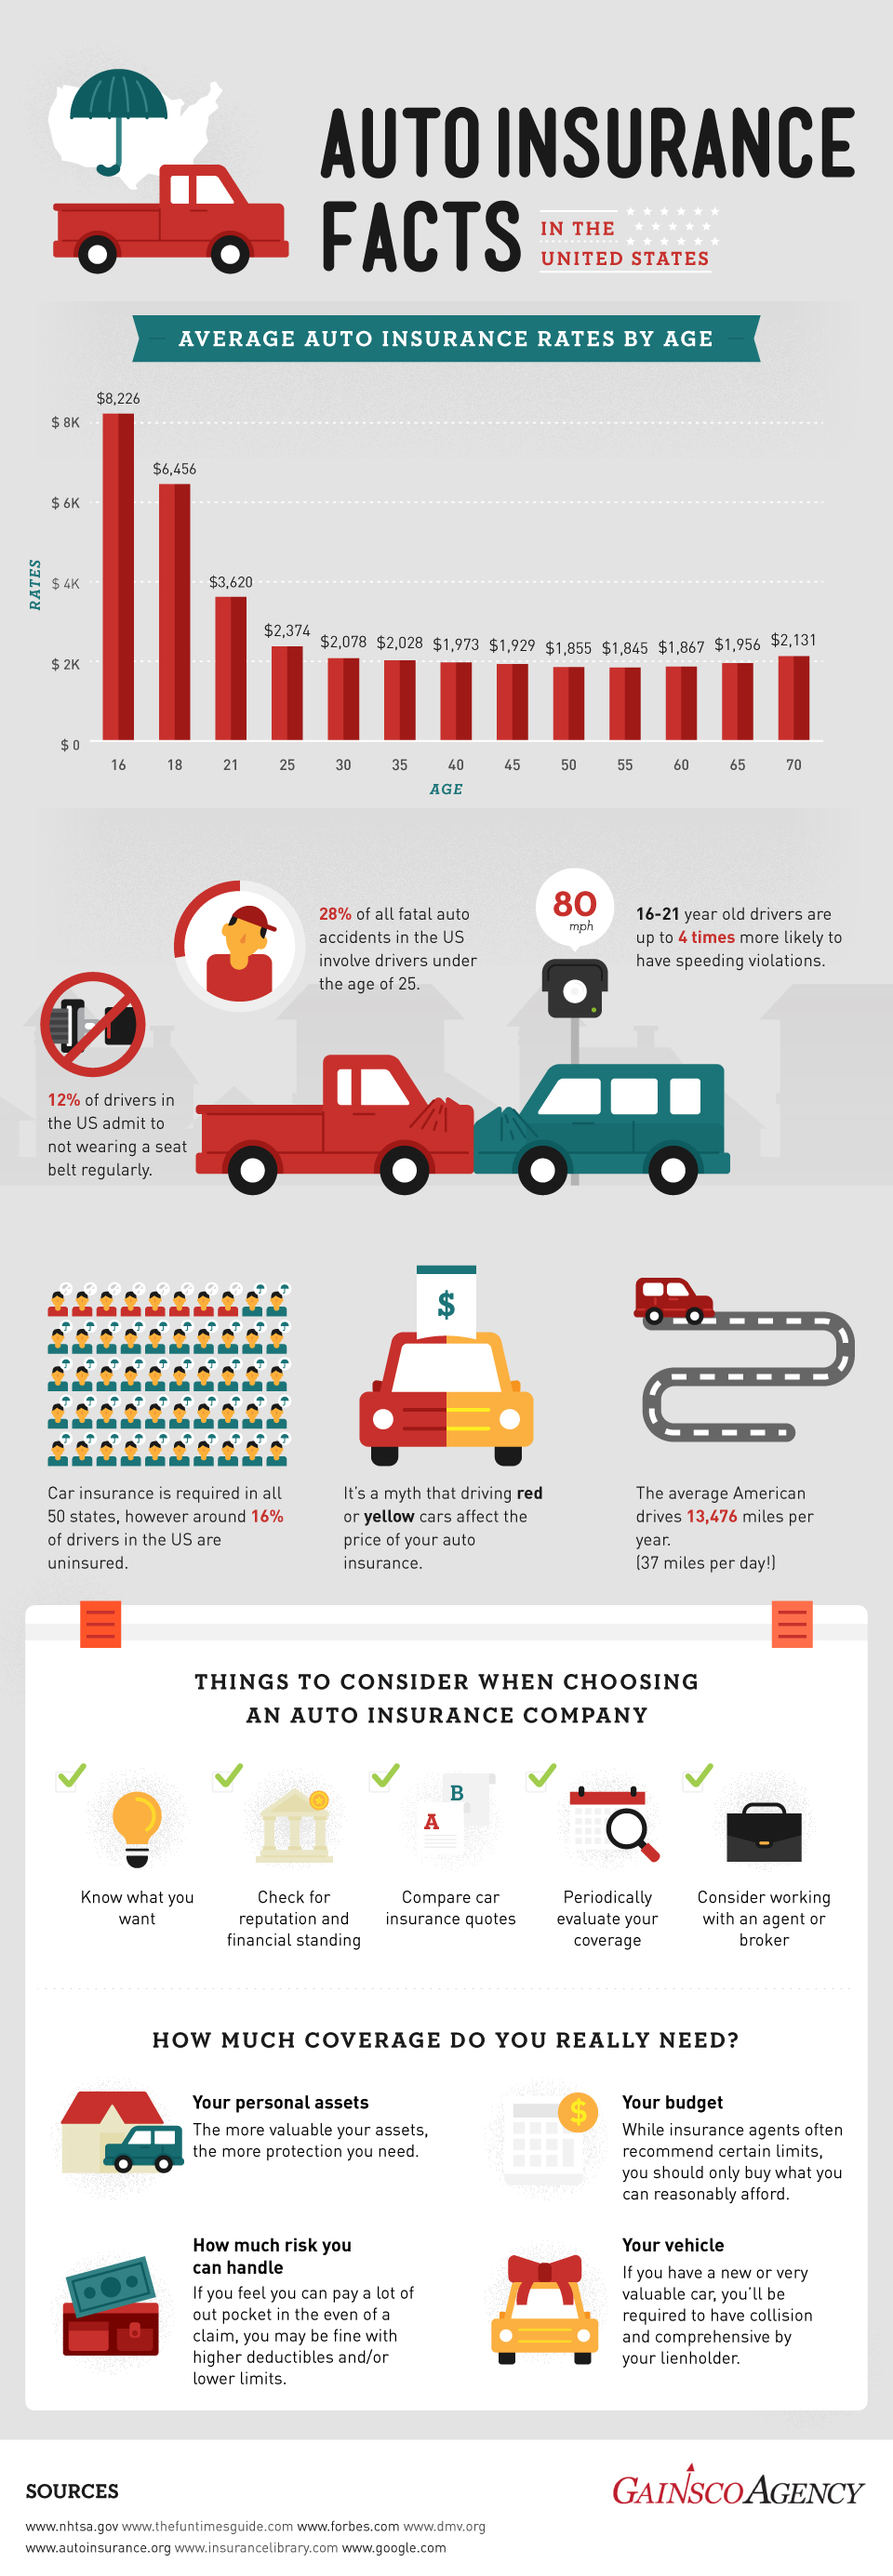 auto-insurance-facts-infographic-plaza